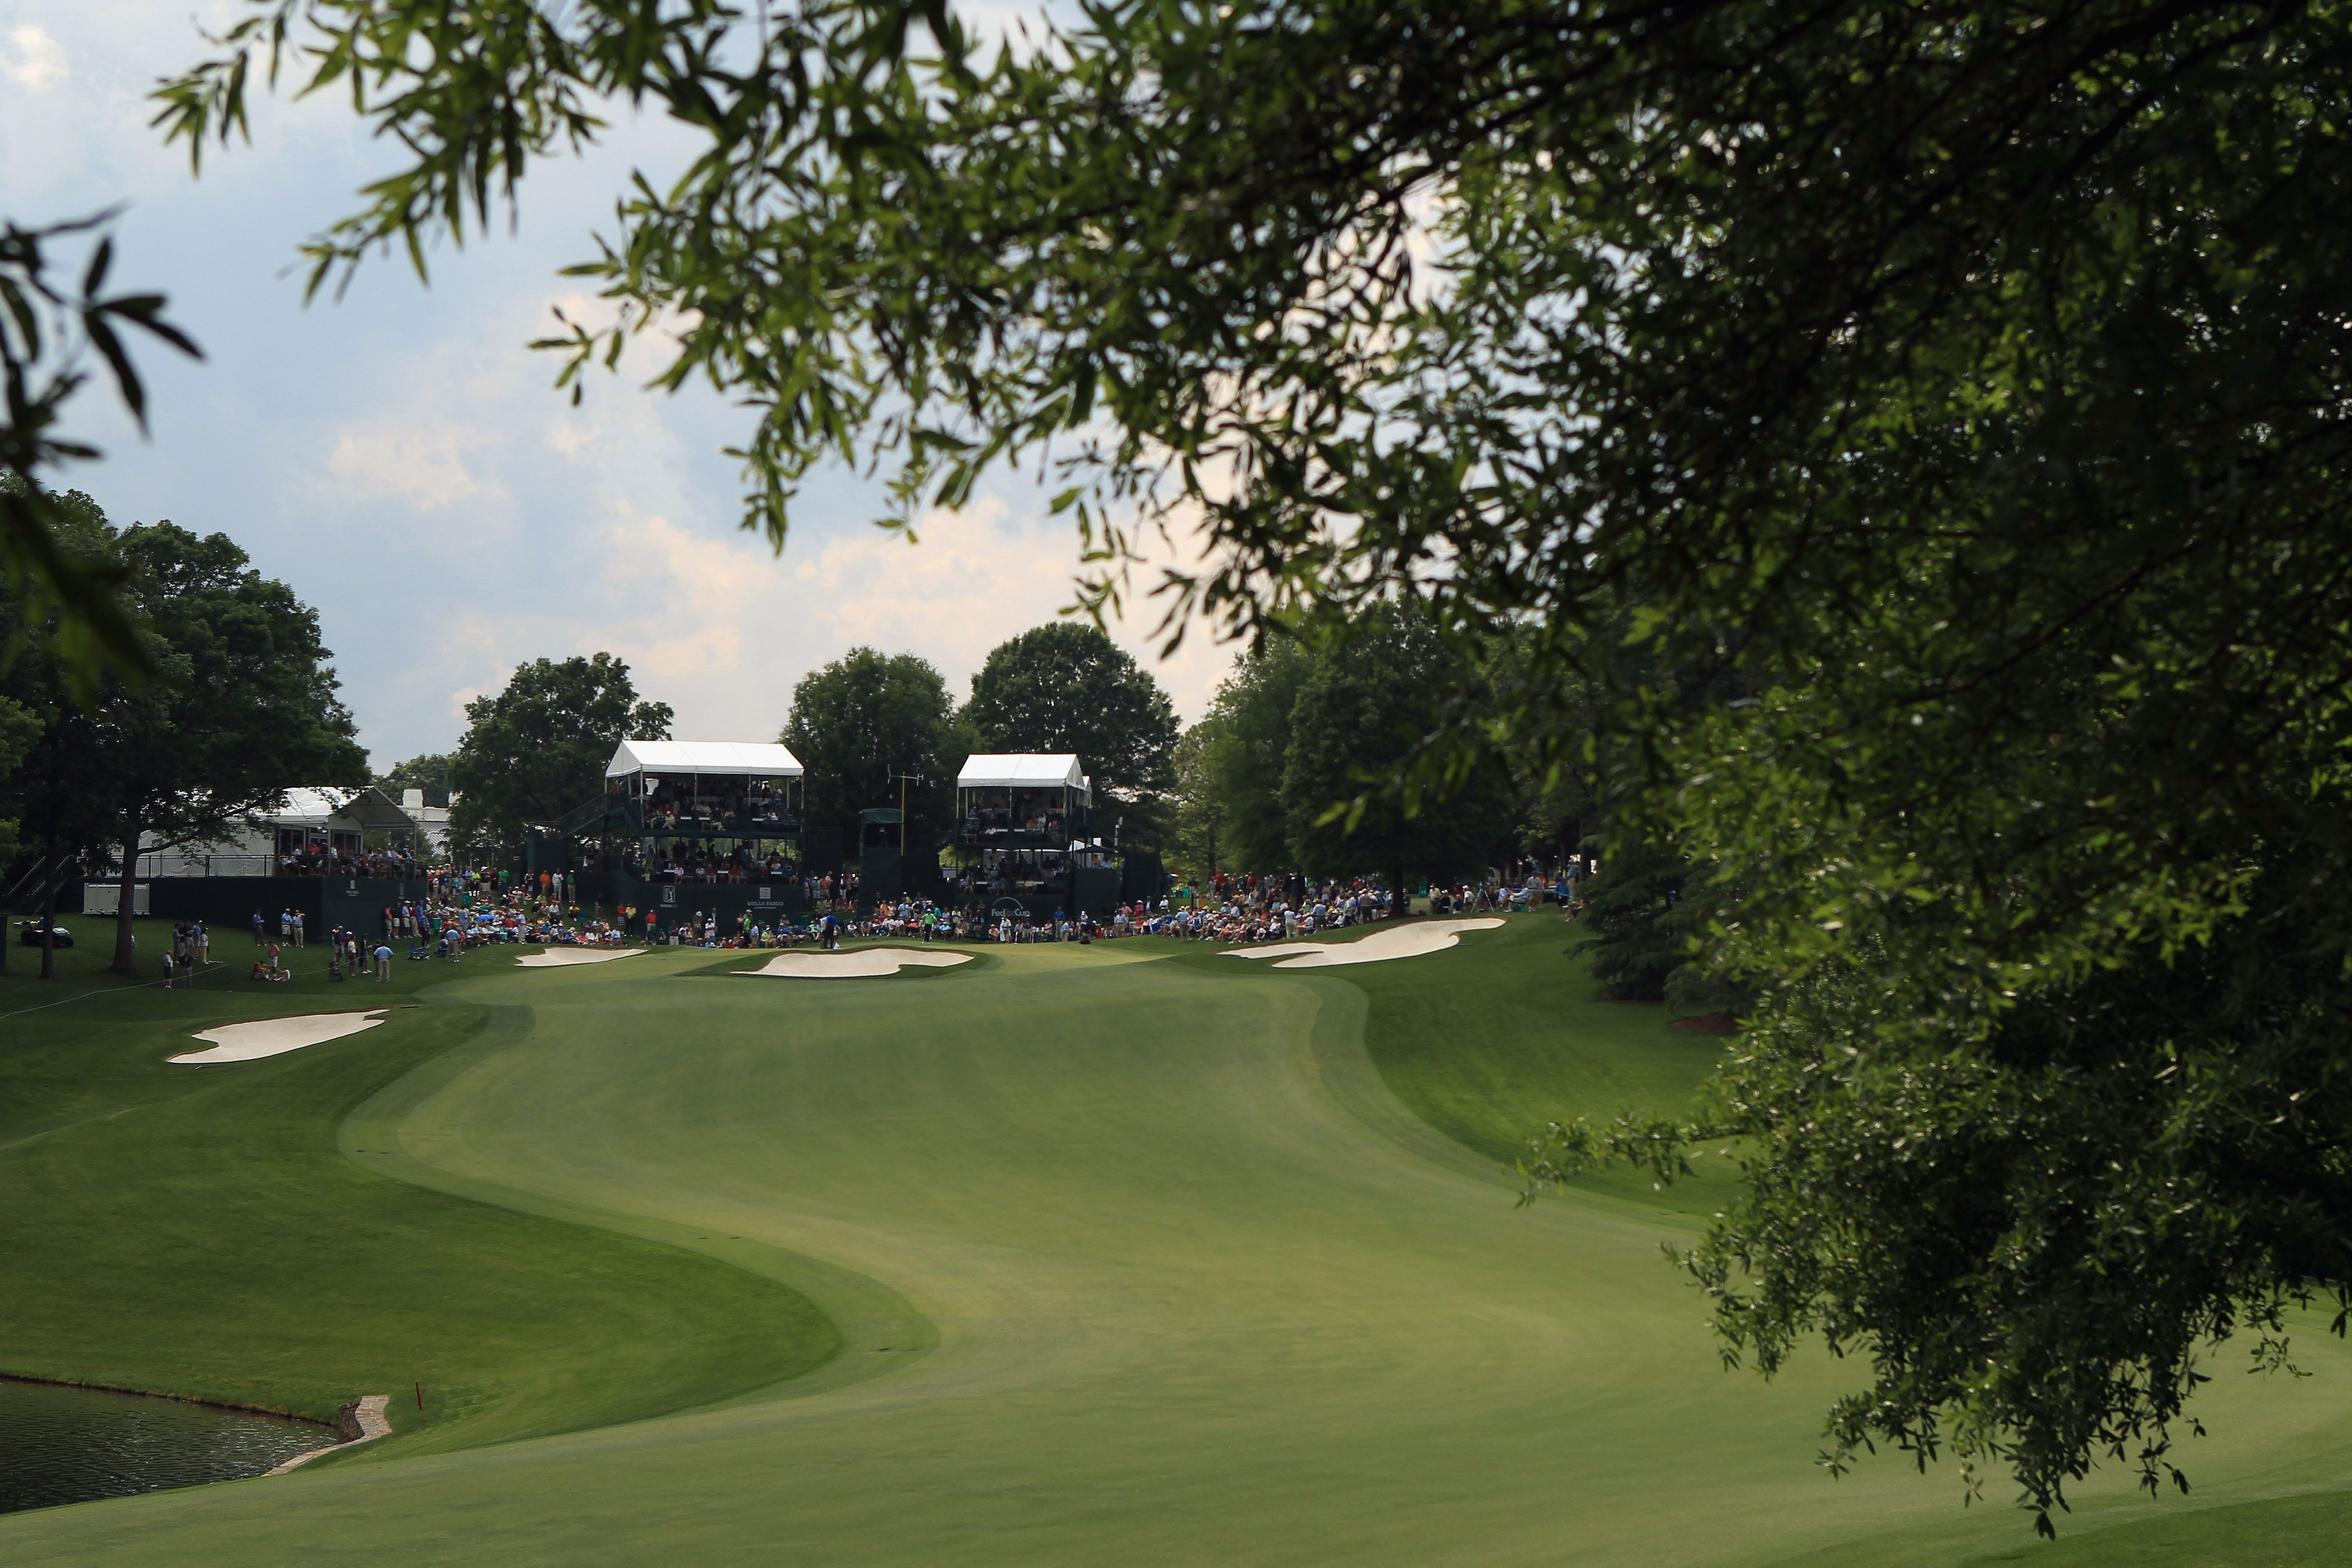 Quail Hollow Club: The Major Golf Course in Charlotte